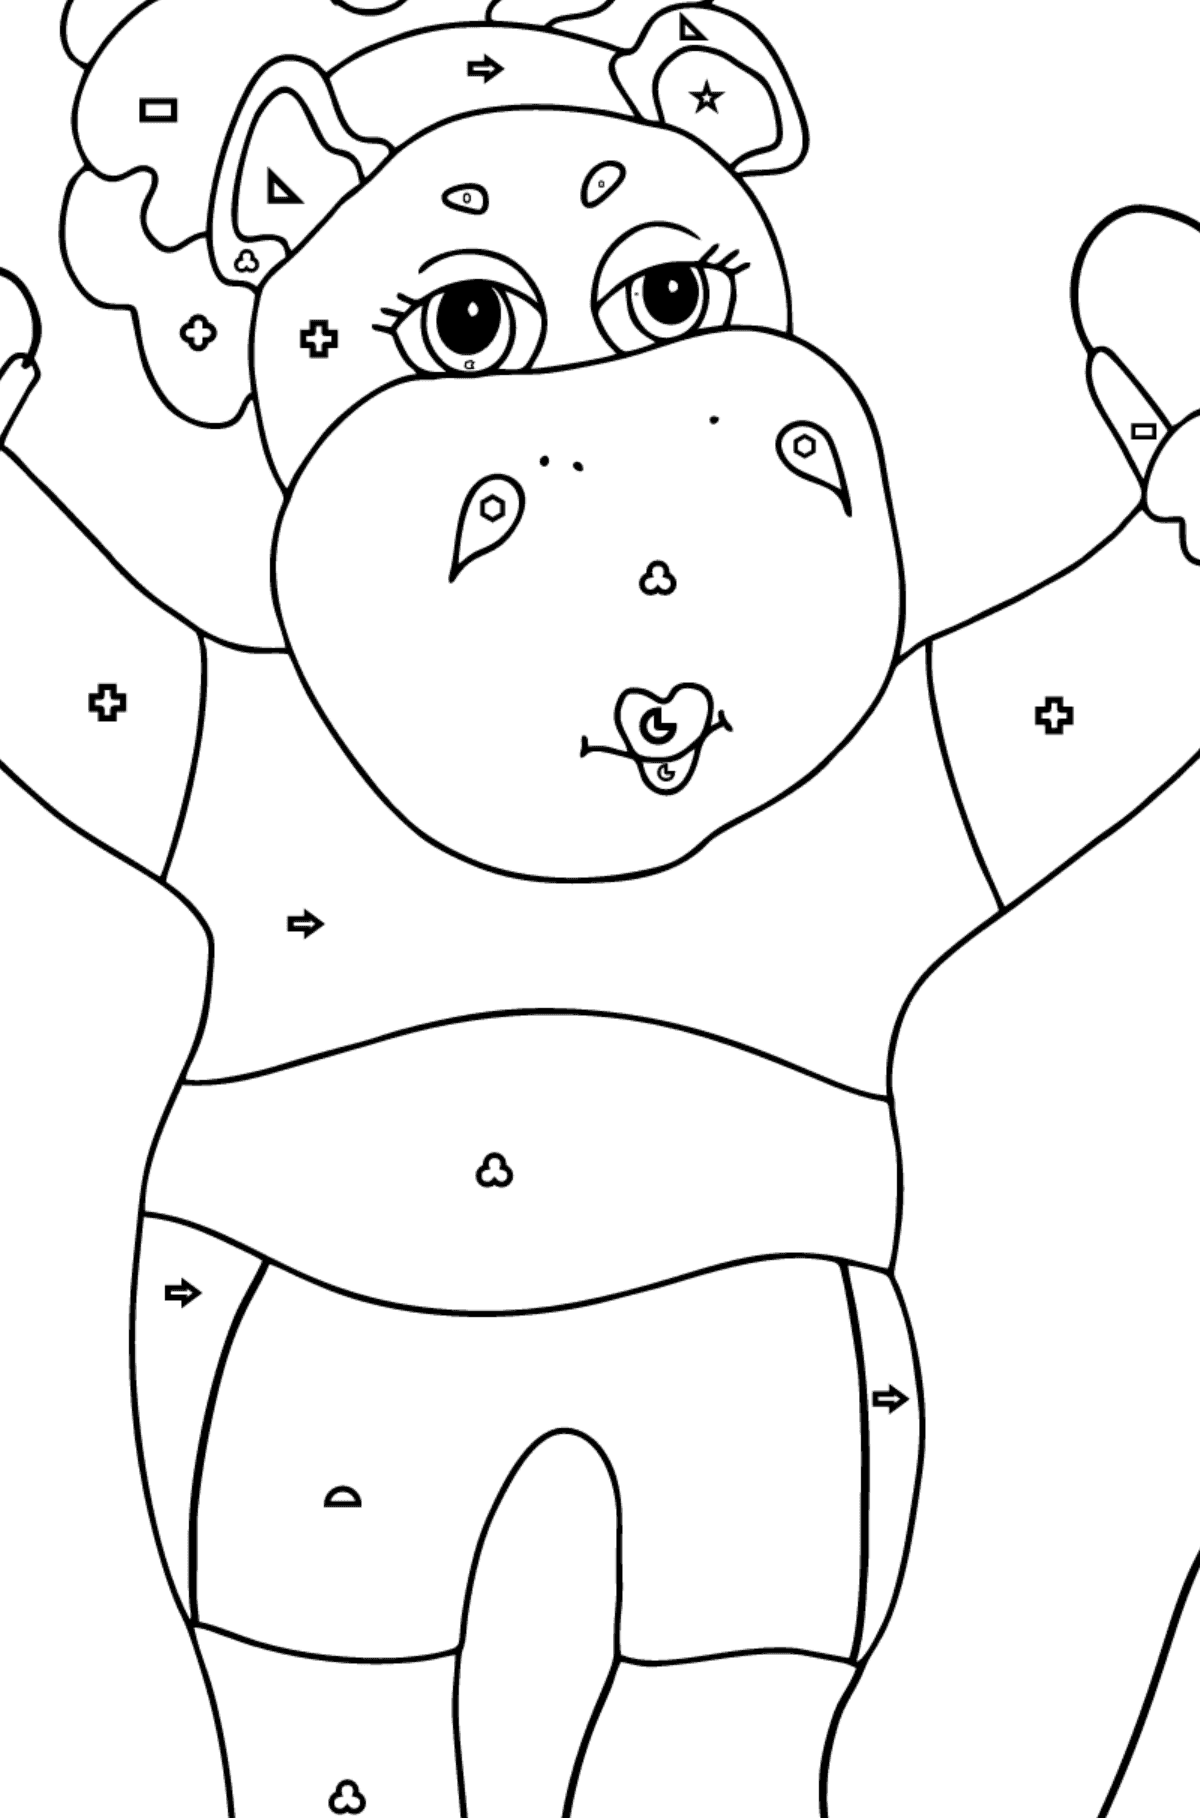 Coloring Page - A Hippo is Jumping on a Rope for Kids  - Color by Geometric Shapes